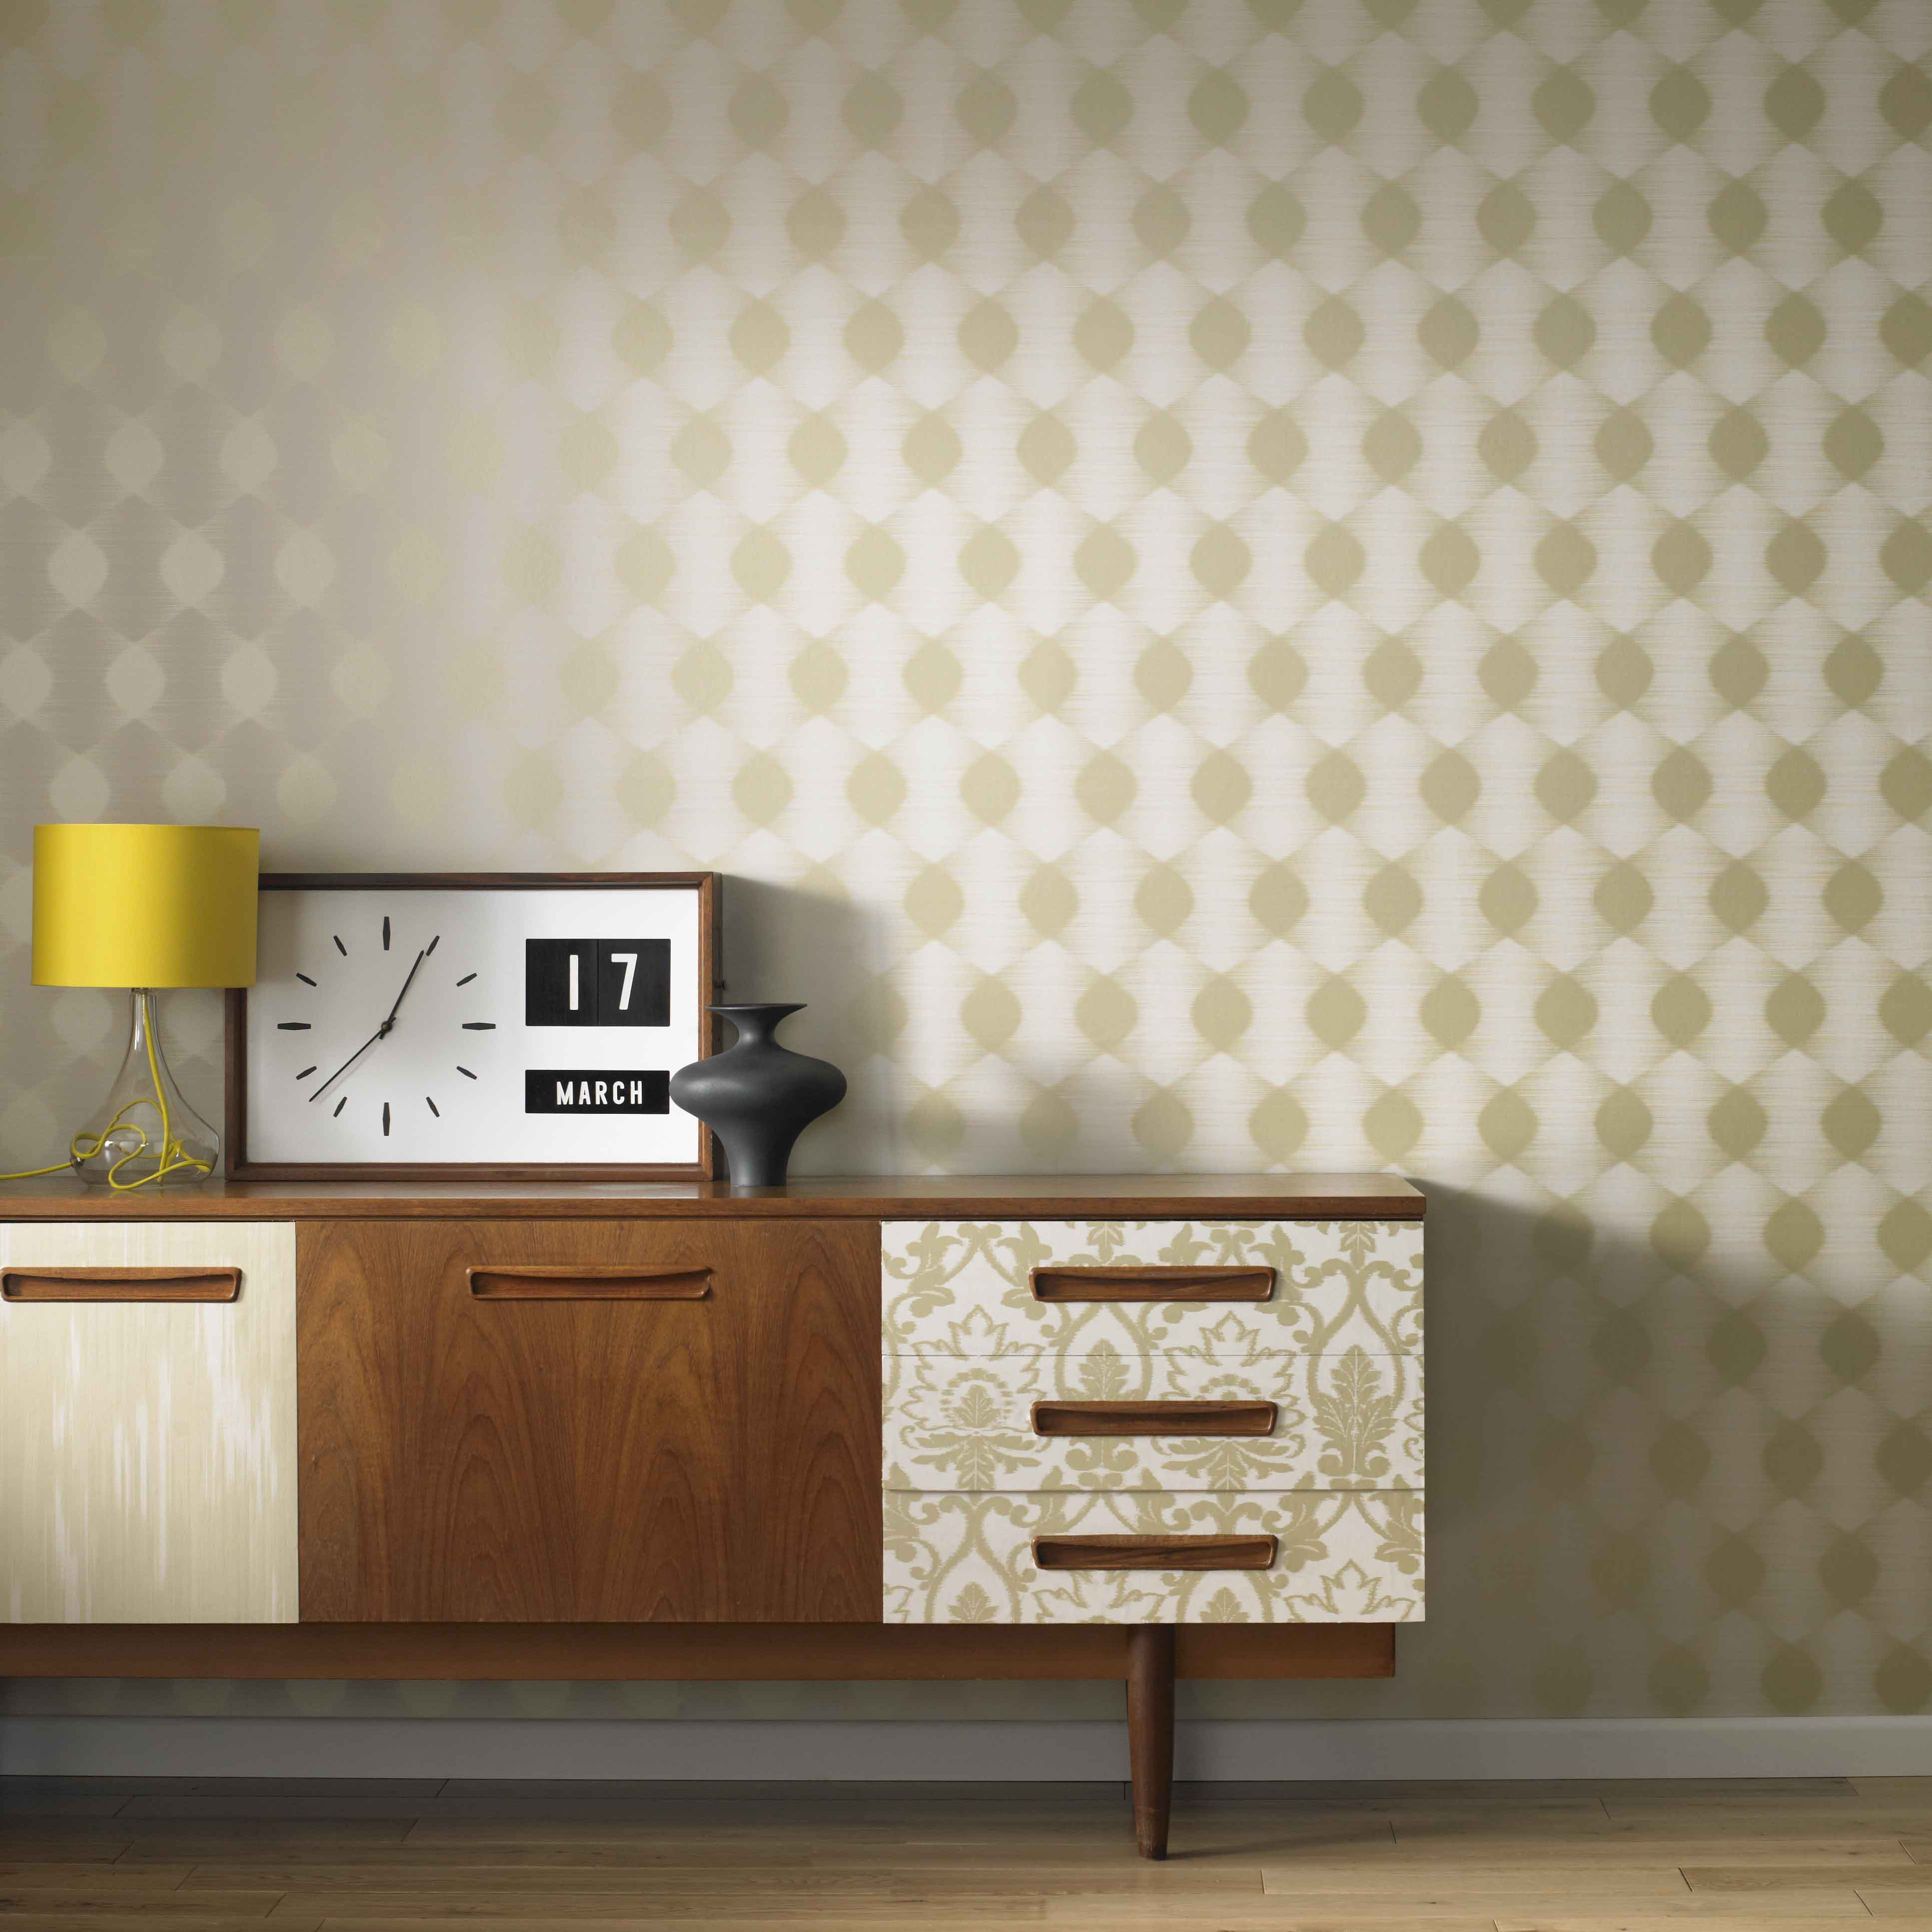 Hanging Patterned Wallpaper Feature Wall